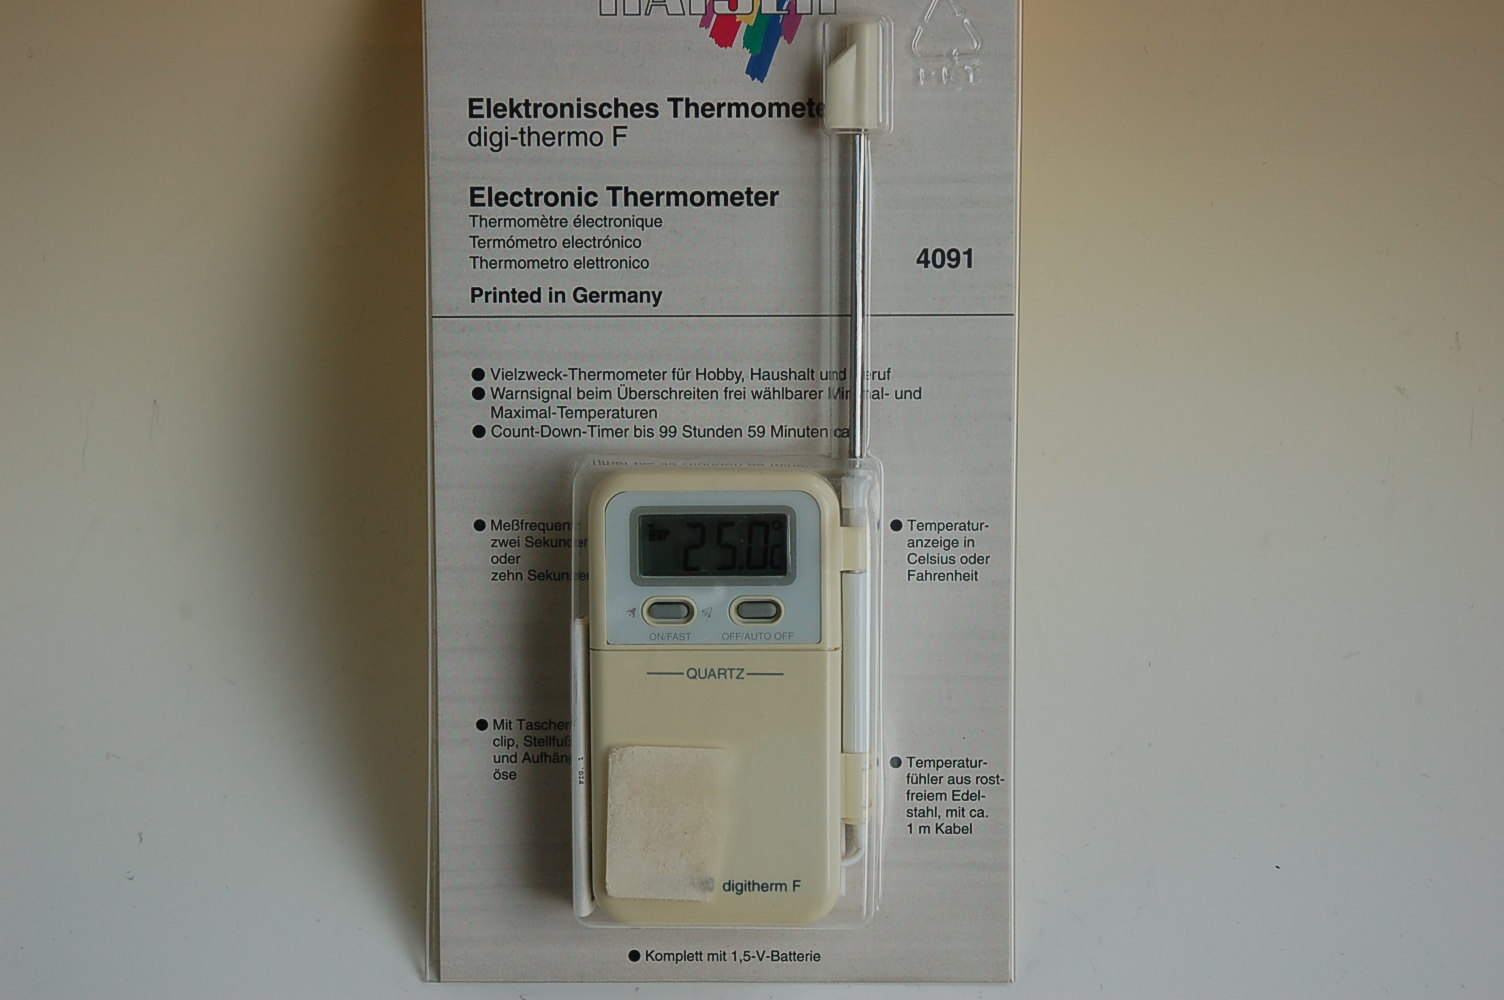 Kaiser digi-thermo F Thermometer 4091 2.Wahl